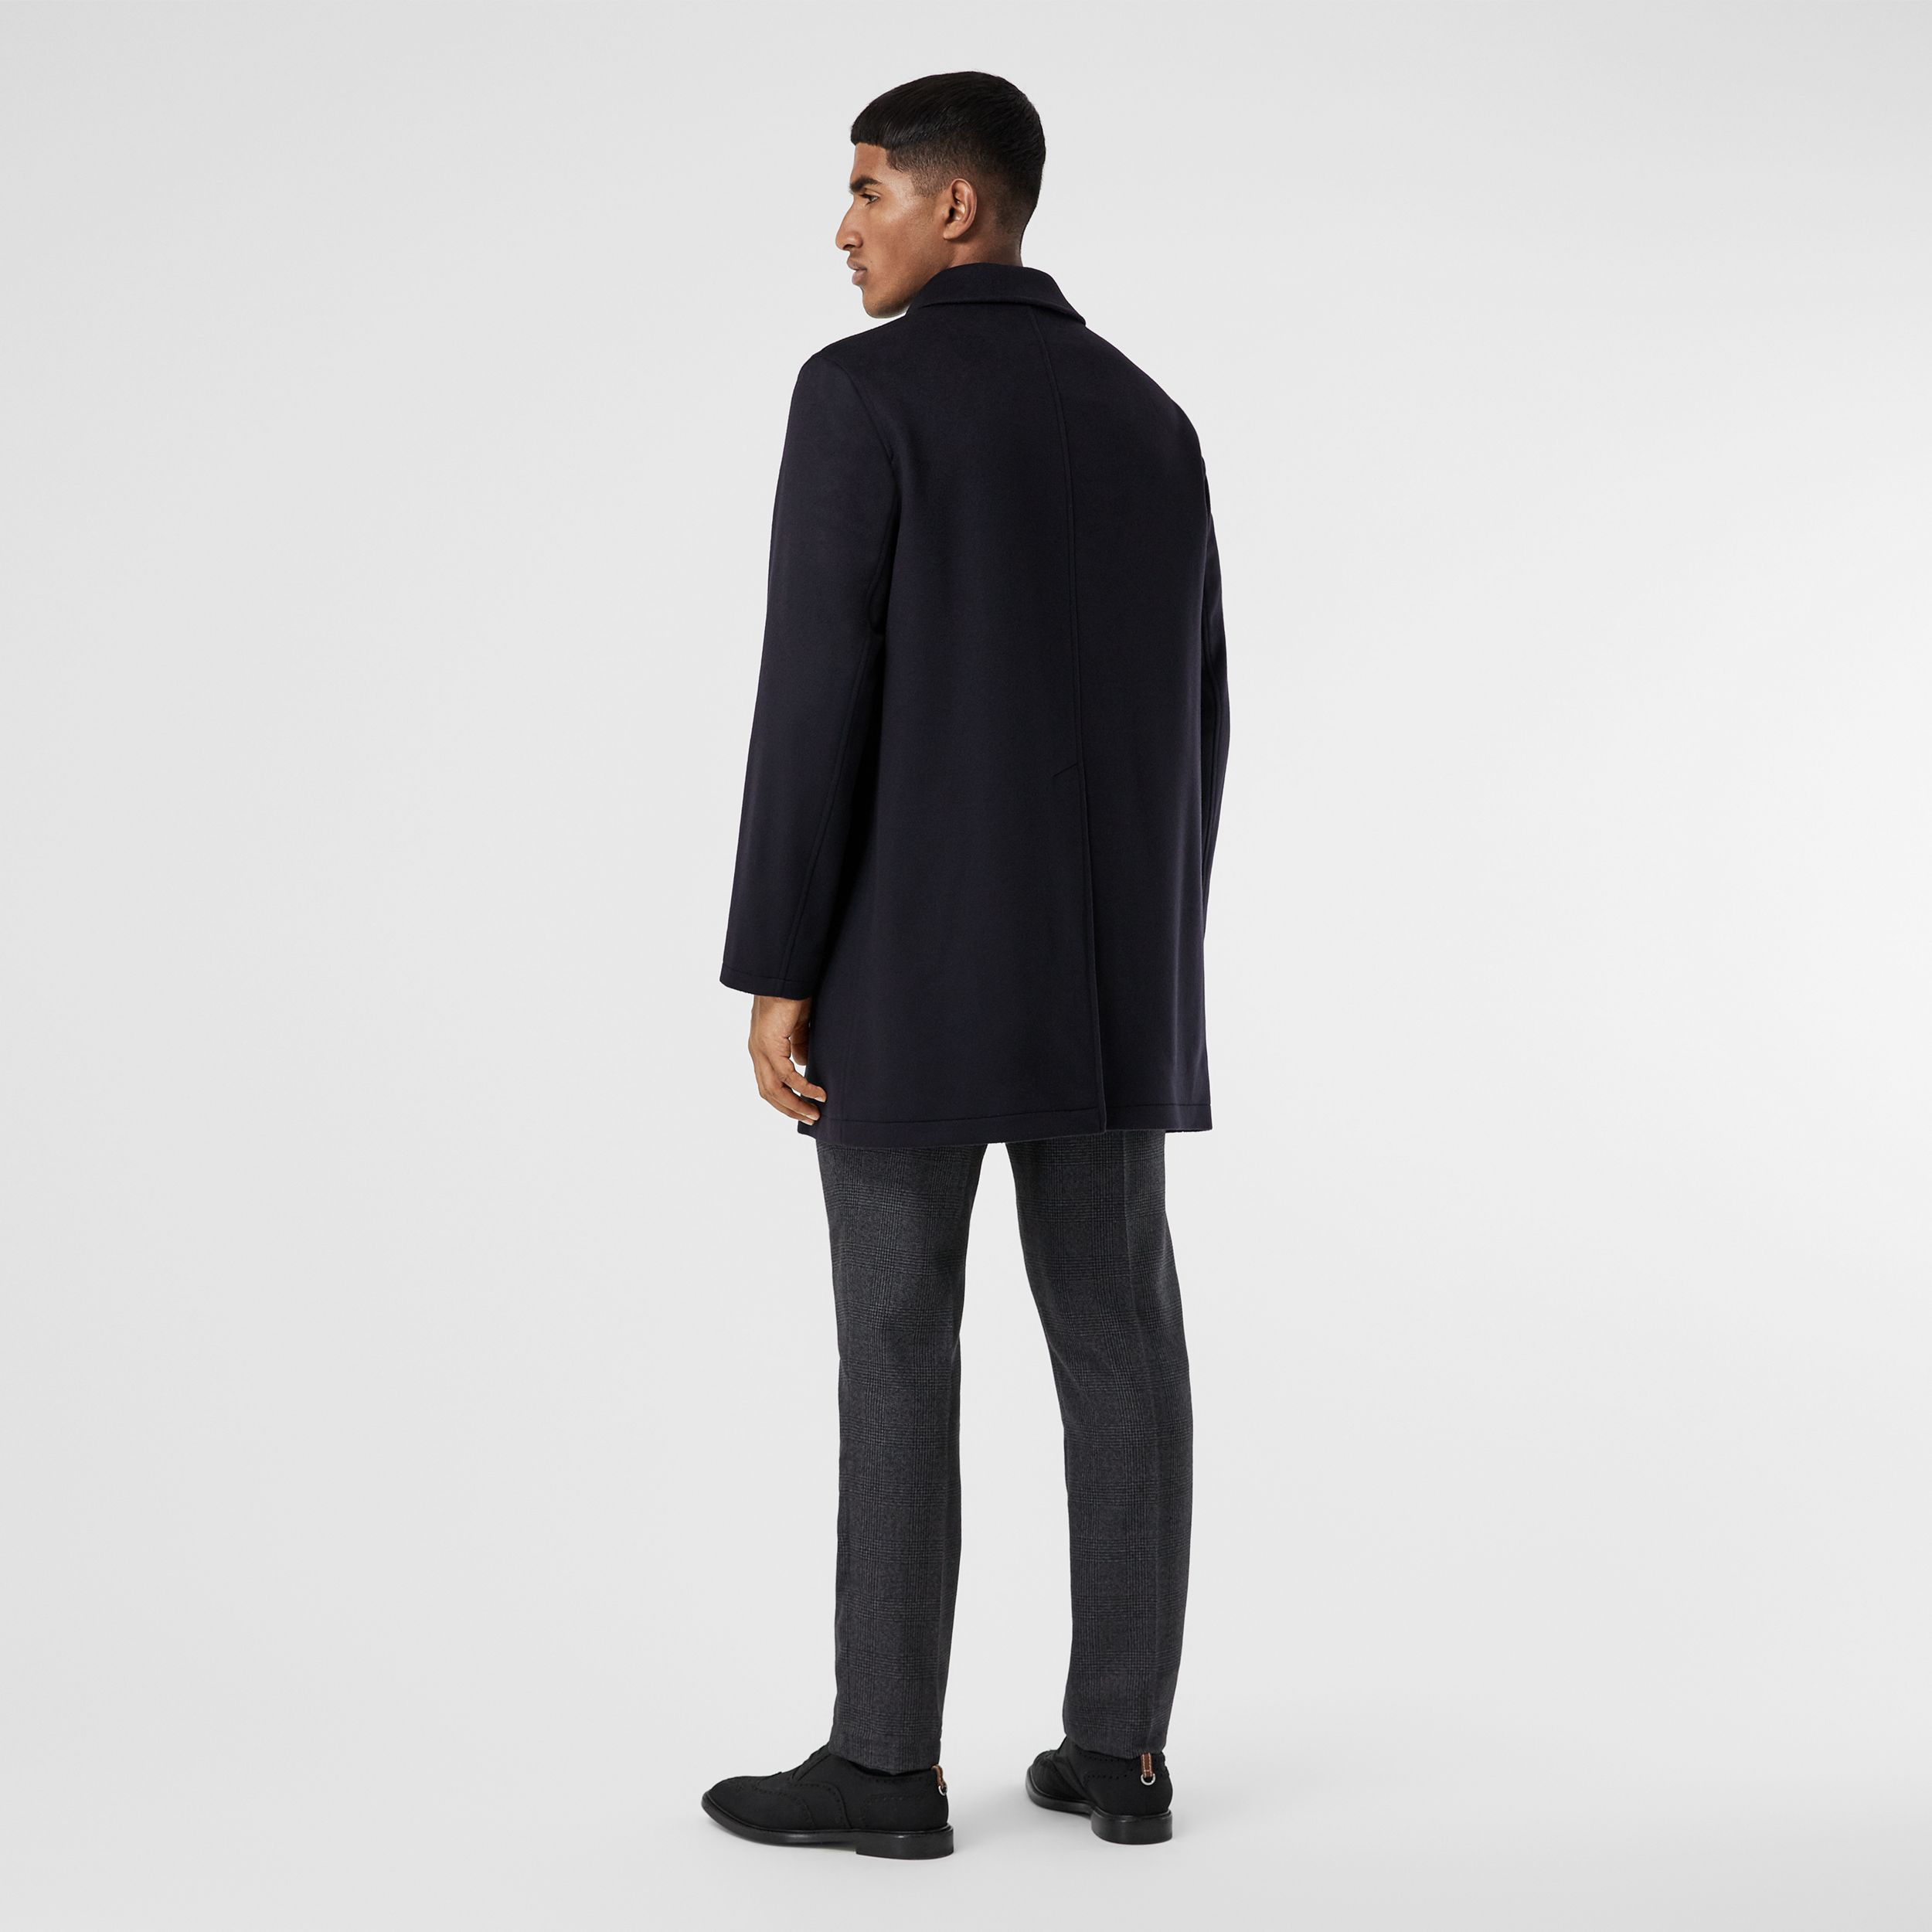 Wool Cashmere Car Coat in Navy - Men | Burberry - 3